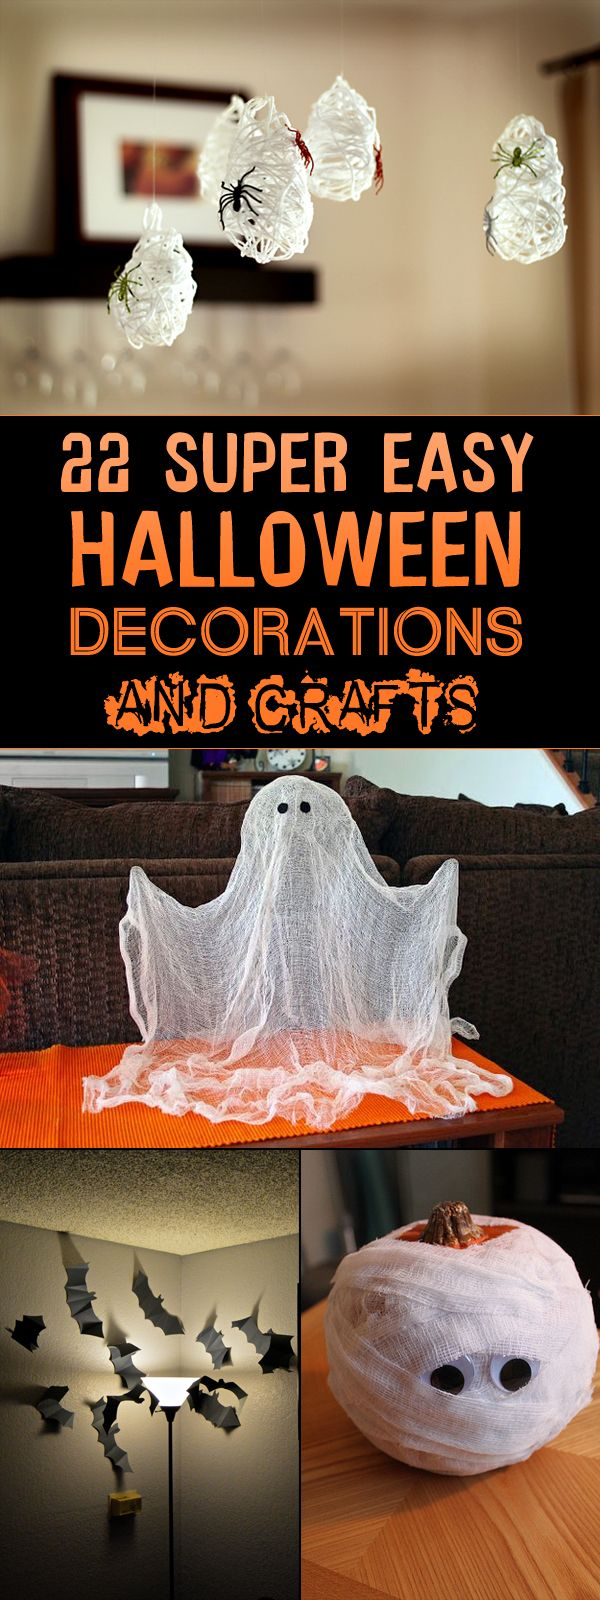 22 super easy halloween decorations and crafts you can make yourself - Easy Homemade Halloween Decorations